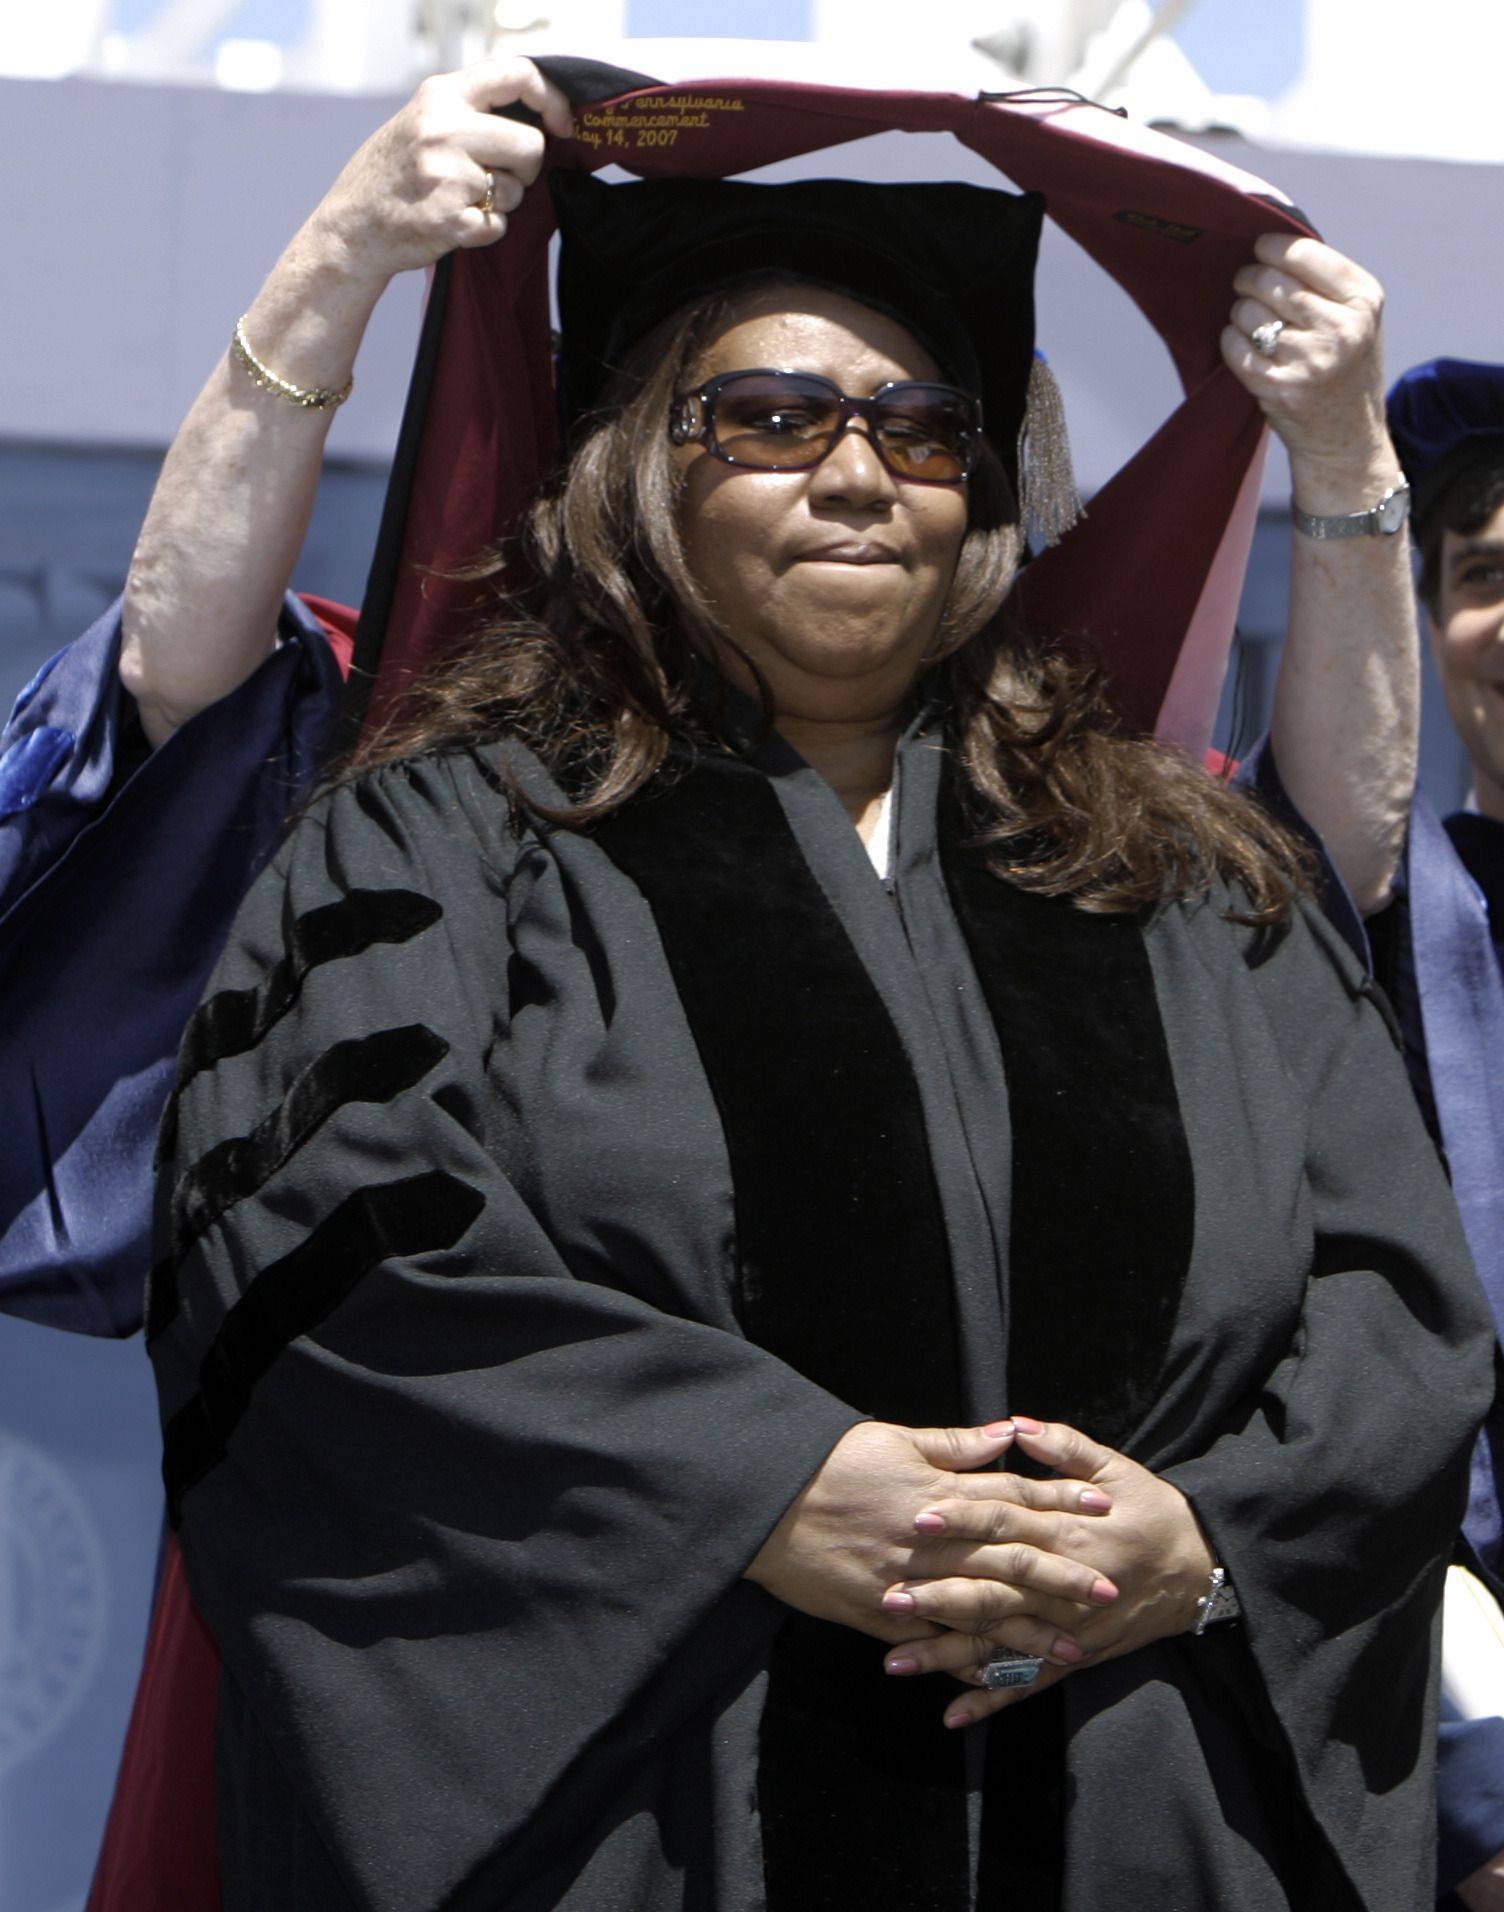 Performer Aretha Franklin receives a honorary degree during the University of Pennsylvania Commencement ceremony in Philadelphia, Monday, May 14, 2007.